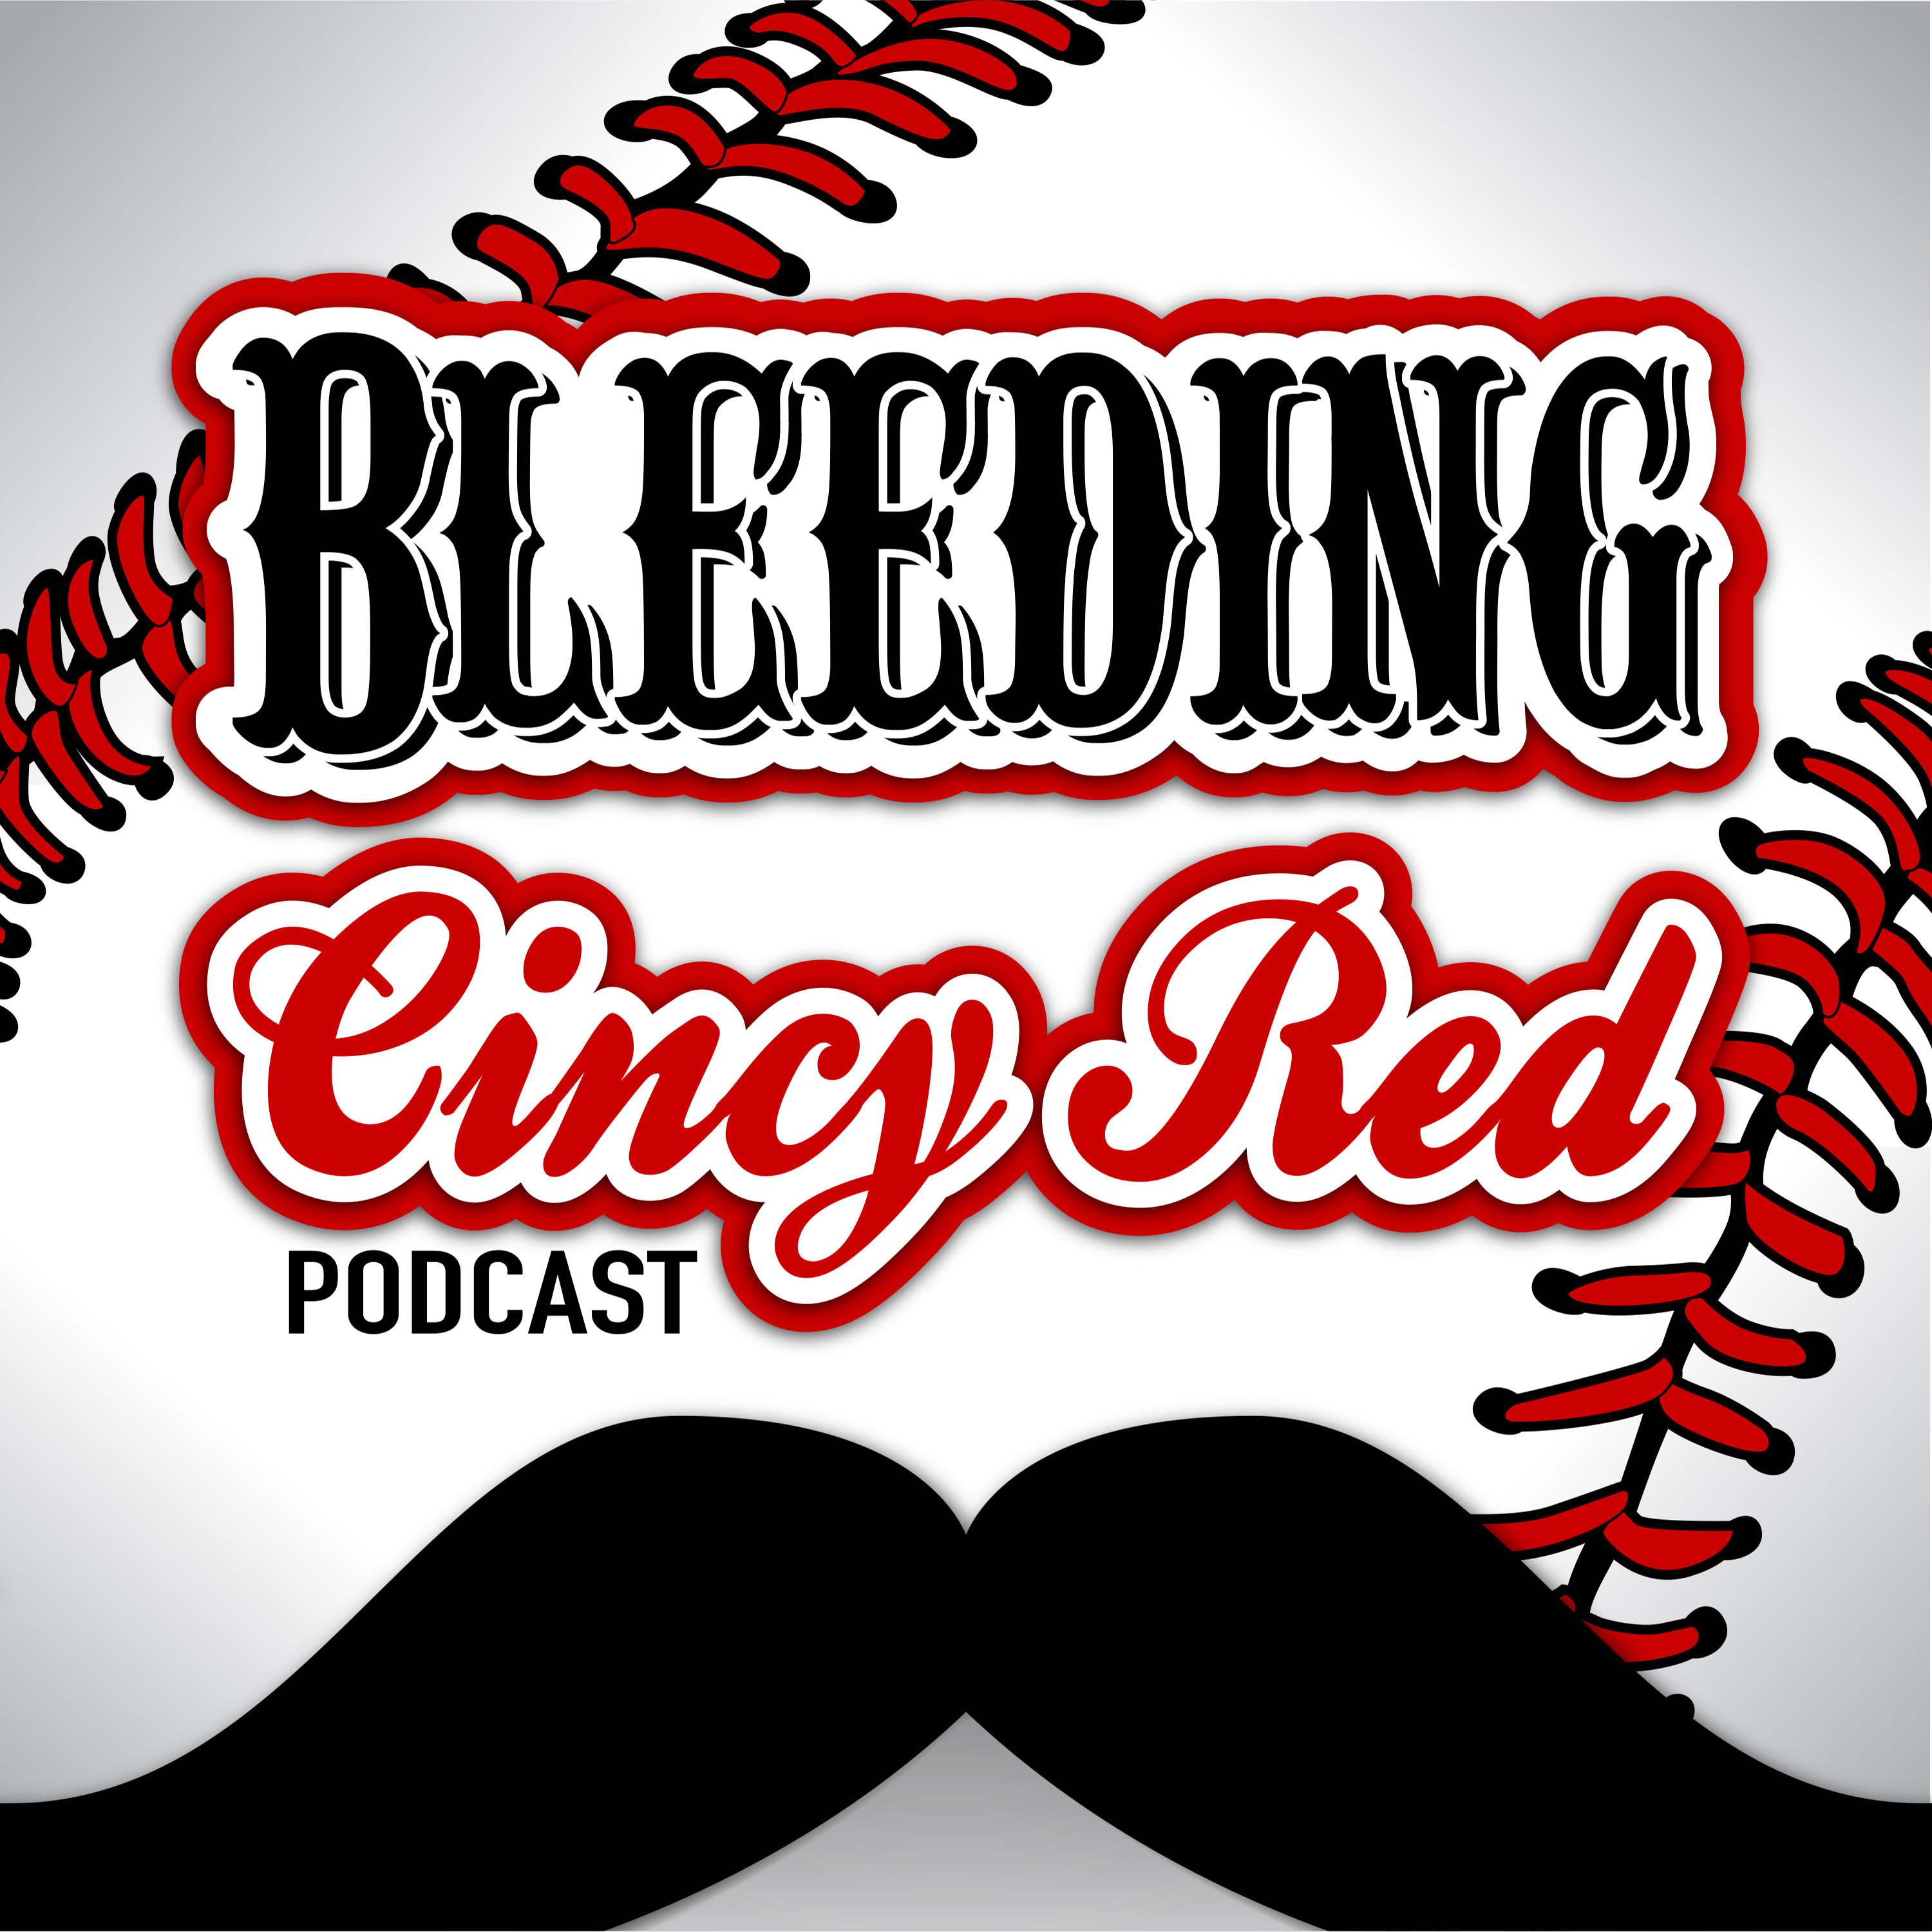 Should the National League Add the DH? – Episode 13